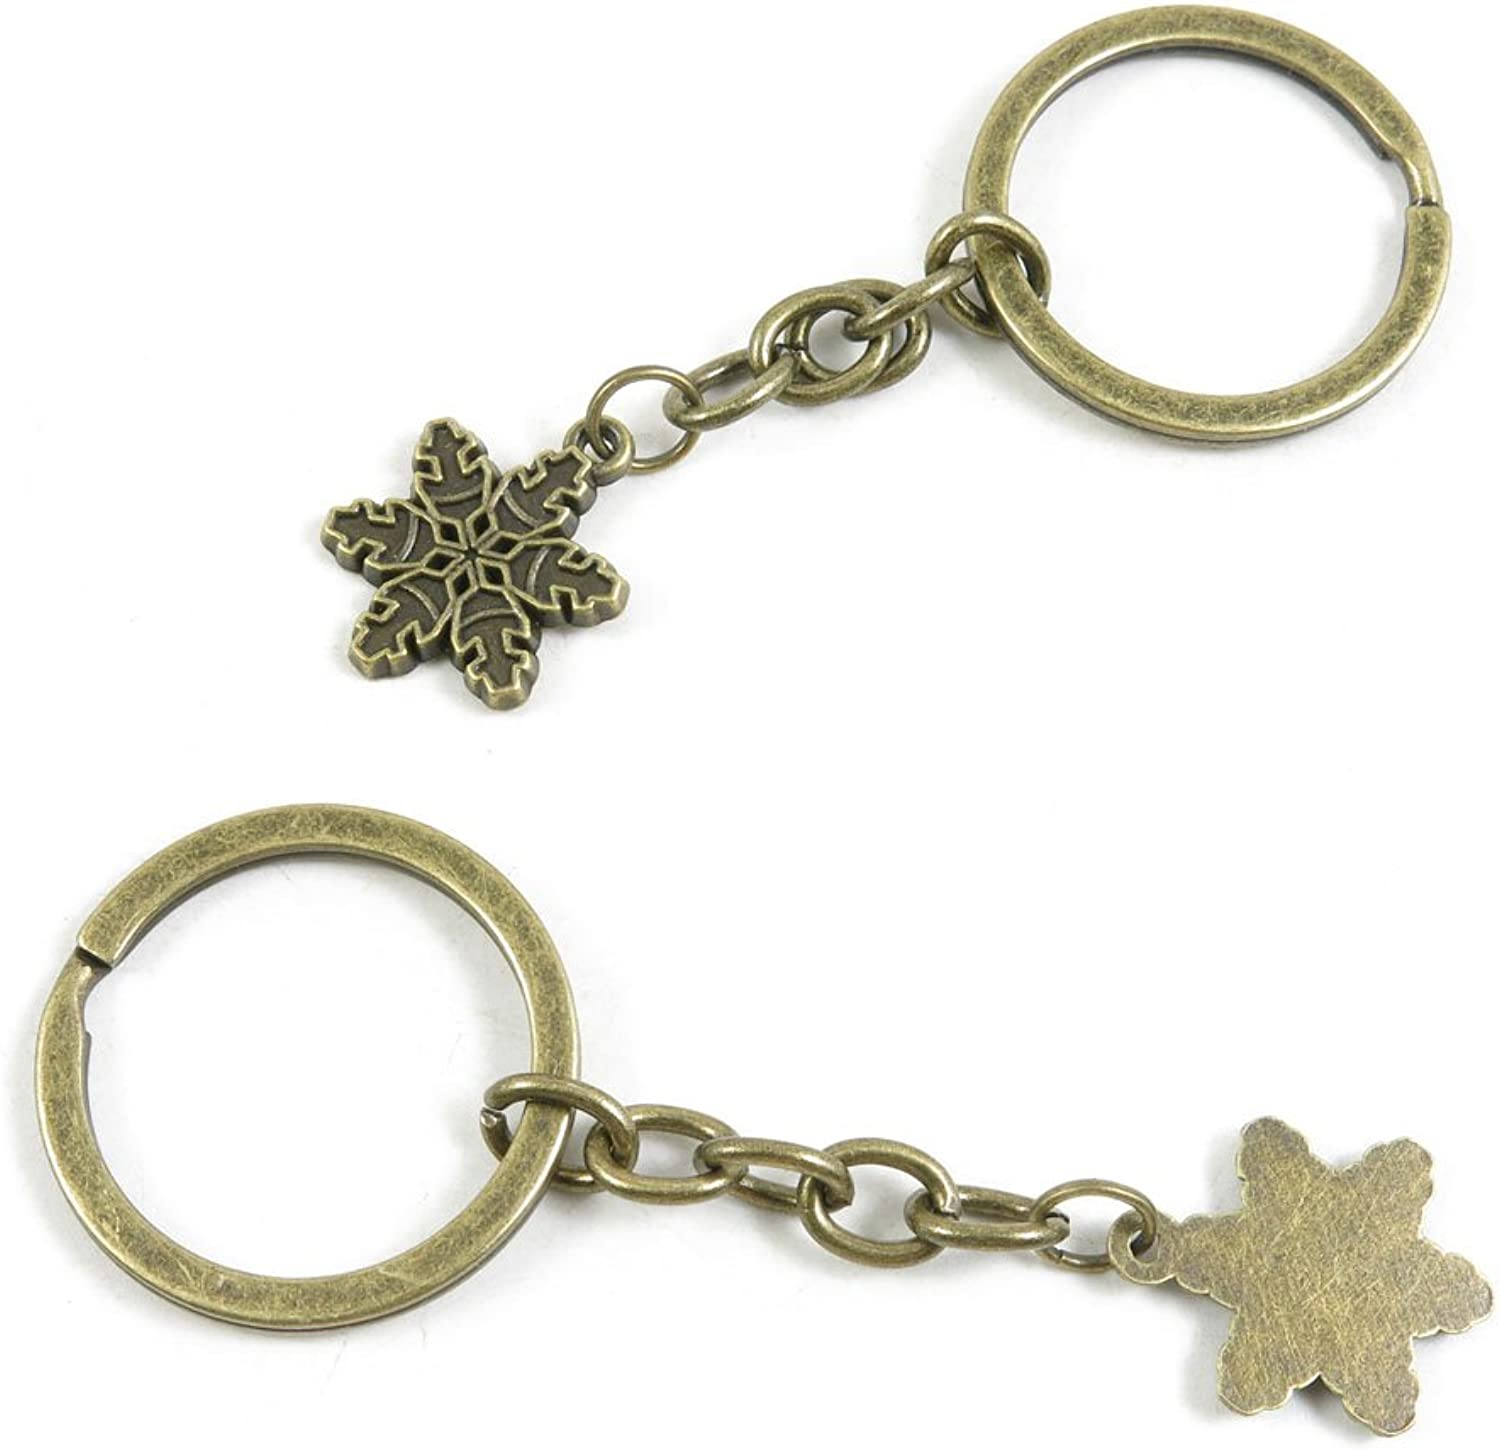 210 Pieces Fashion Jewelry Keyring Keychain Door Car Key Tag Ring Chain Supplier Supply Wholesale Bulk Lots S7BS1 Snow Flake Snowflake